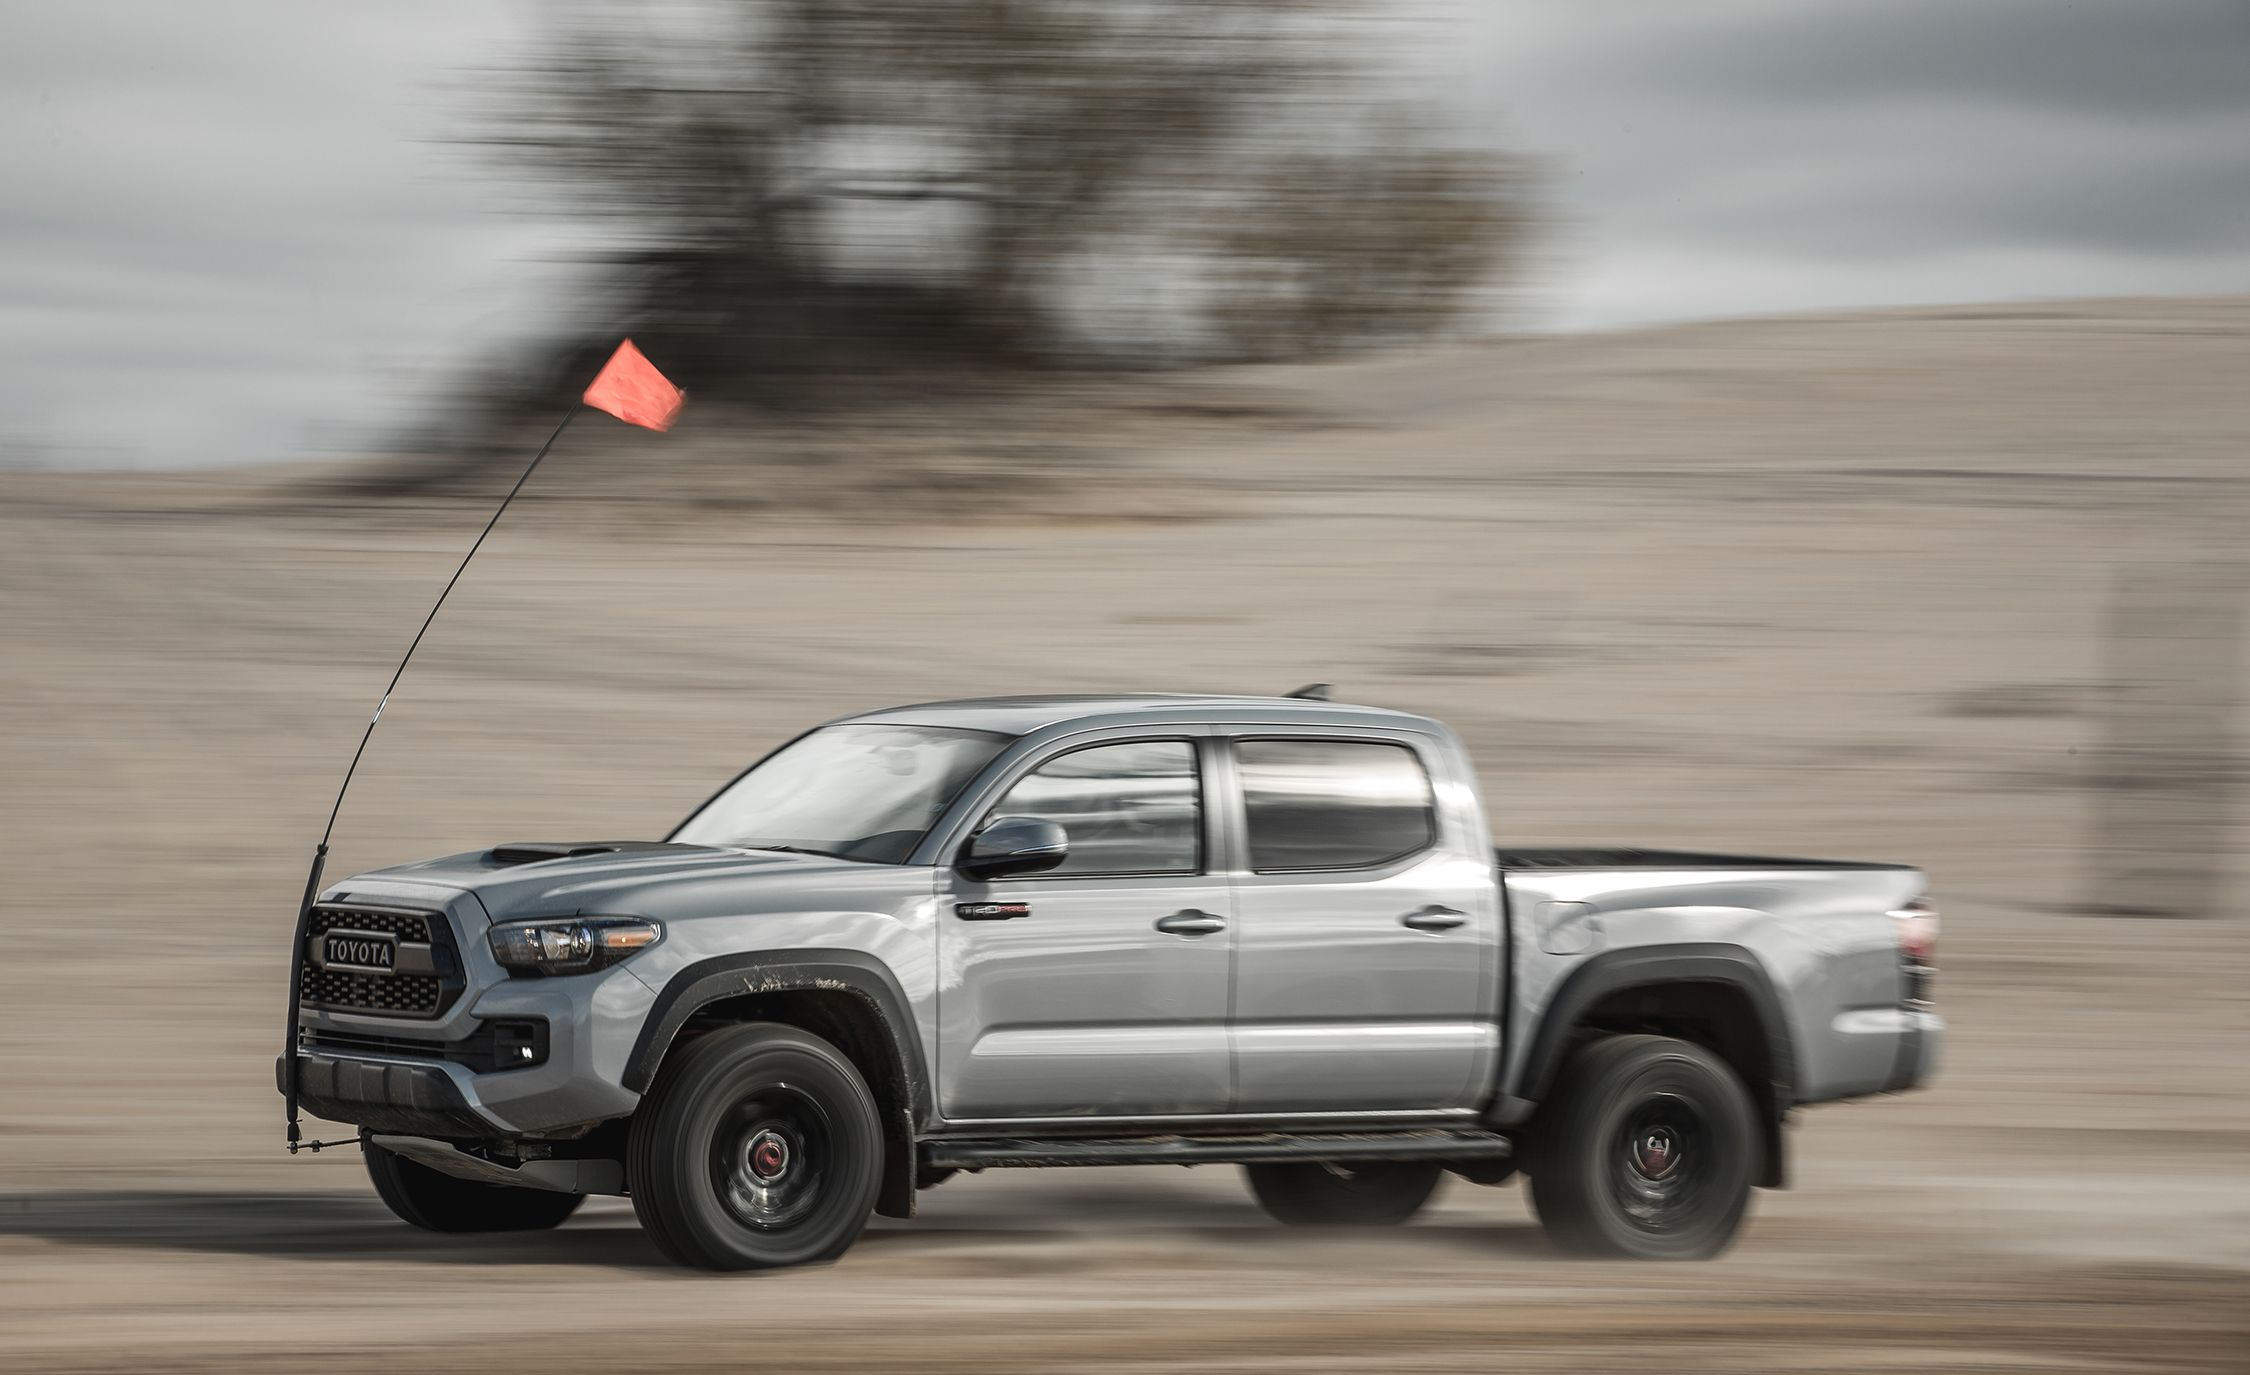 2017 toyota tacoma fuel economy review car and driver. Black Bedroom Furniture Sets. Home Design Ideas